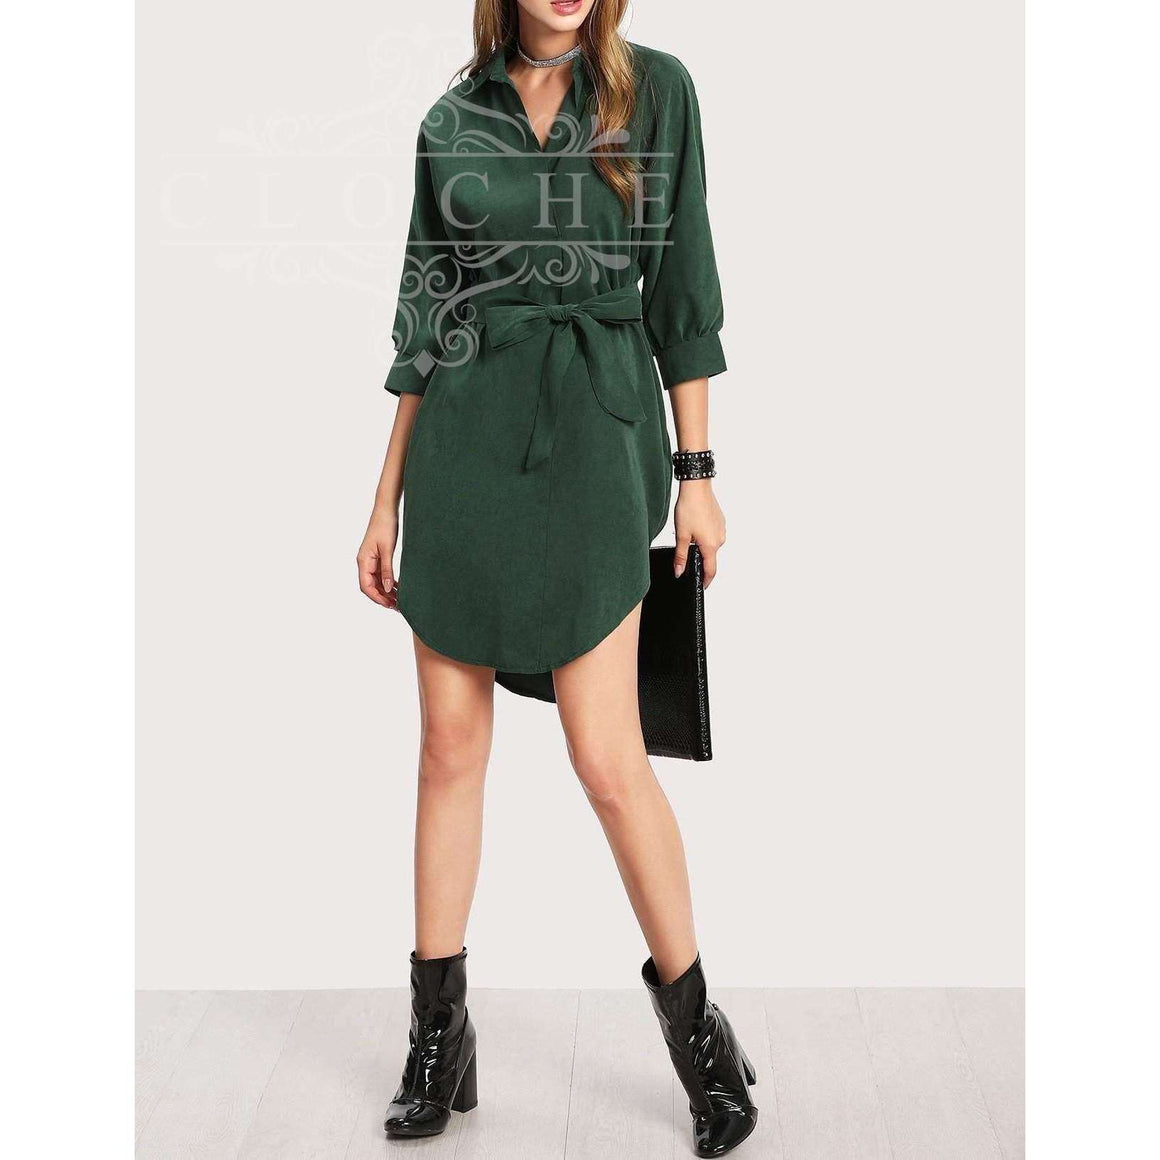 CLOCHE Green Fields High Low Shirt Dress-CLOCHE-CLOCHE